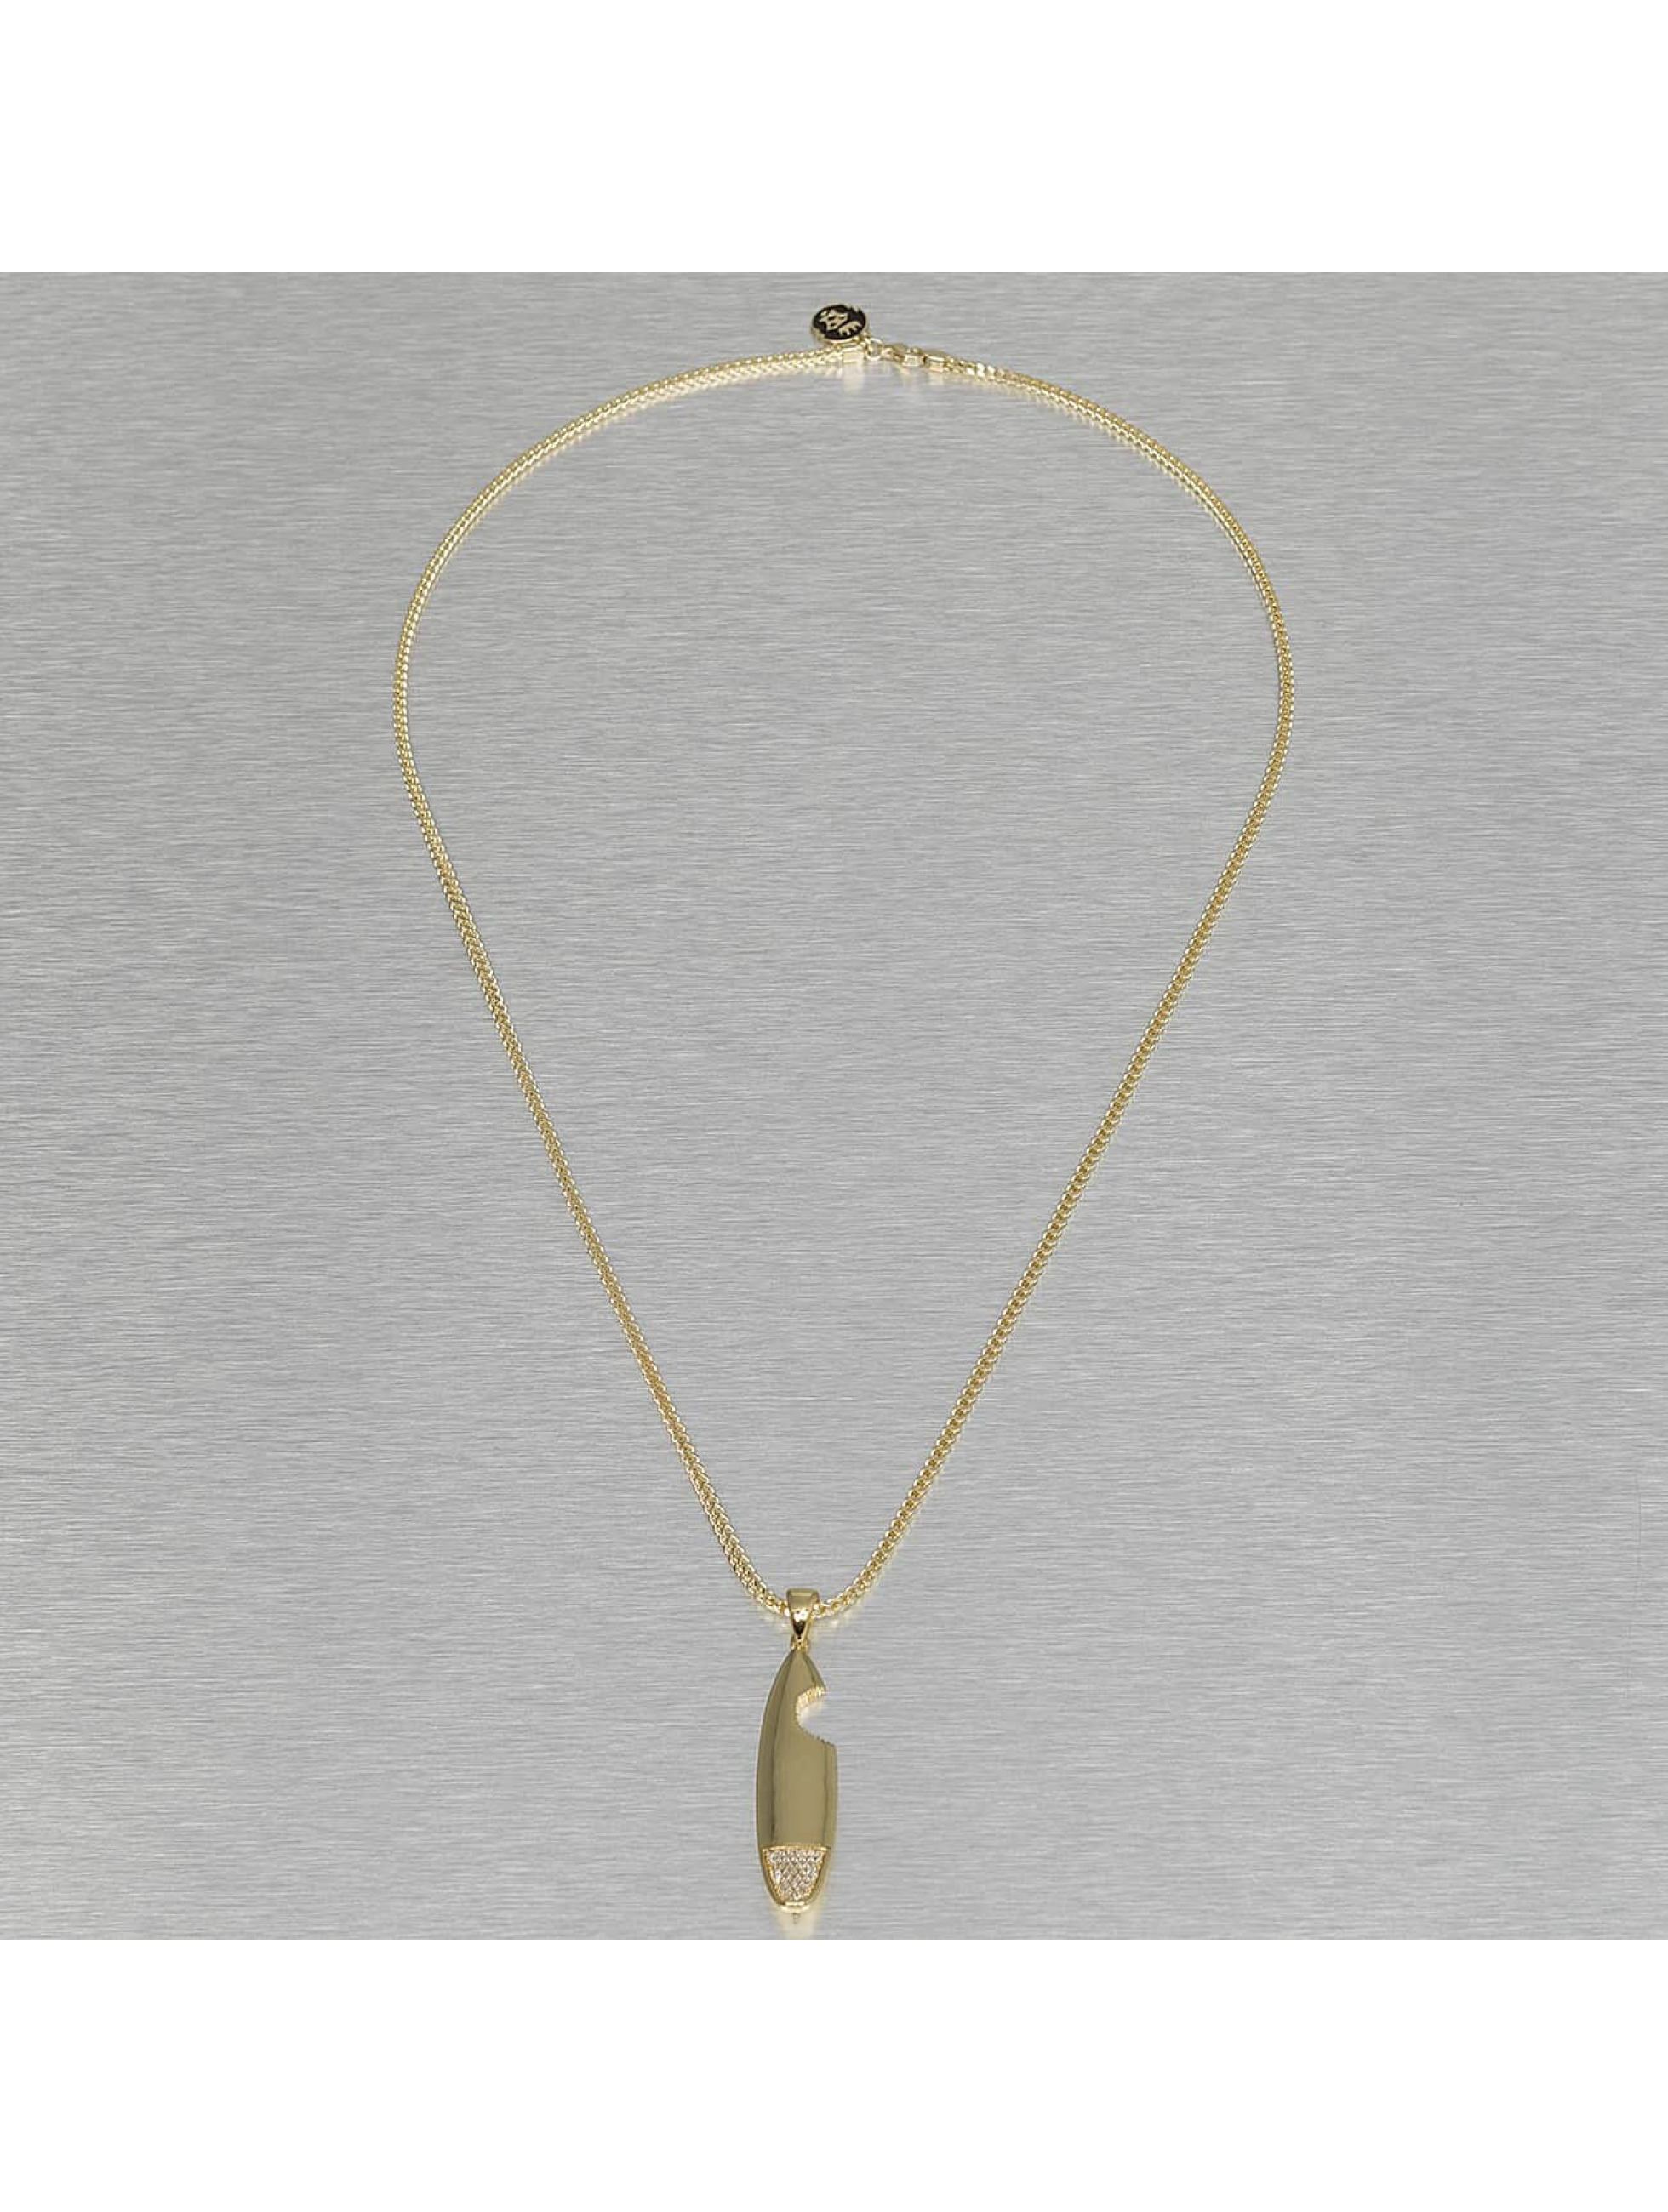 KING ICE Necklace Shark Bite Surfboard gold colored